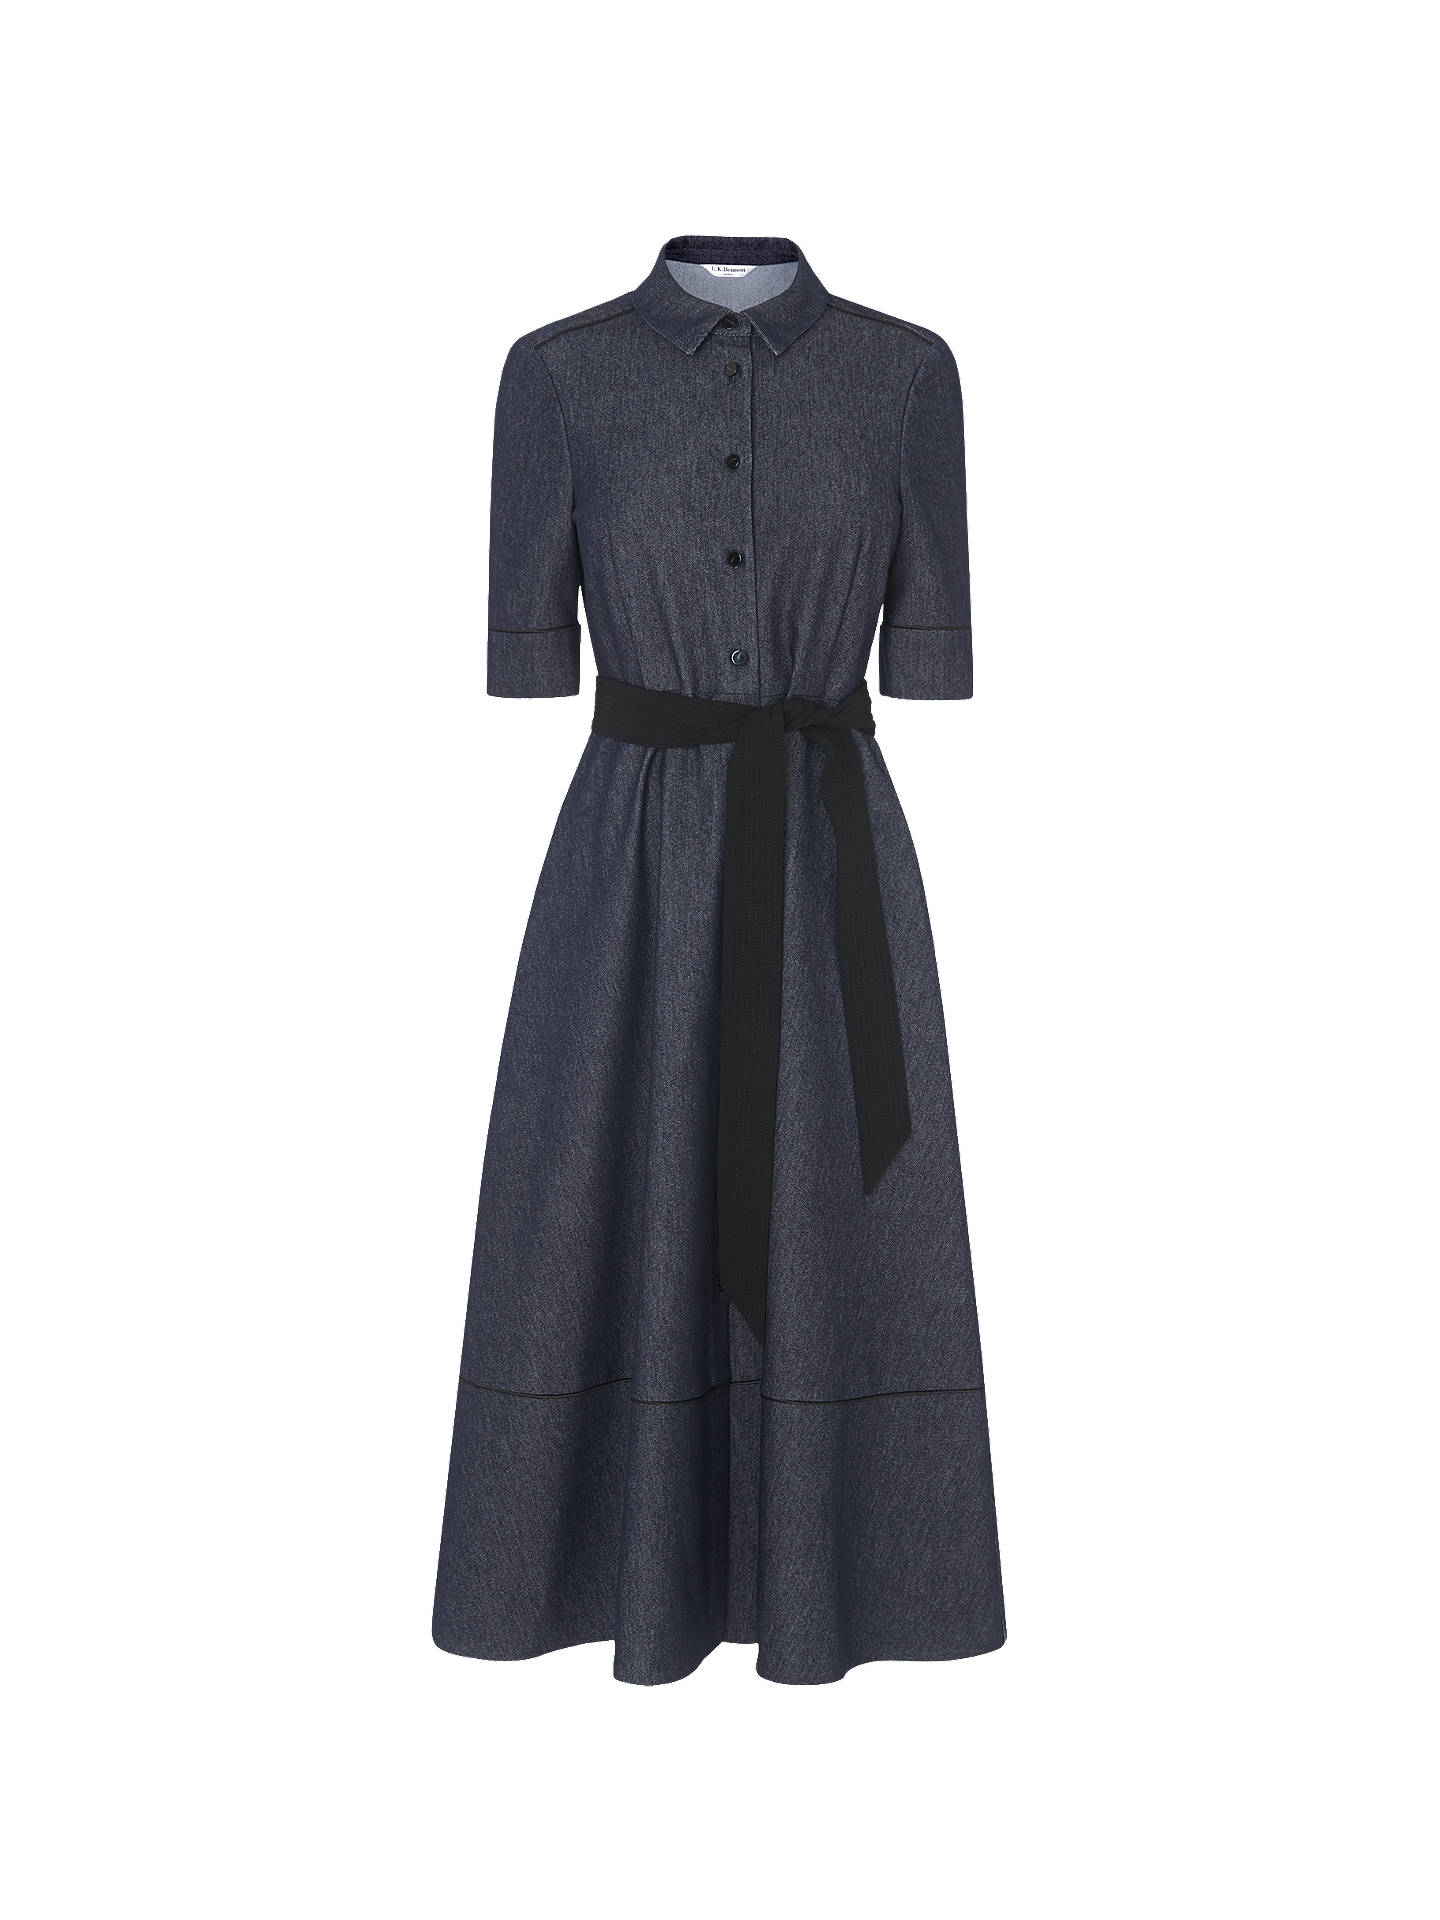 BuyL.K.Bennett Reene Cotton Mix Dress, Blue Denim, 6 Online at johnlewis.com